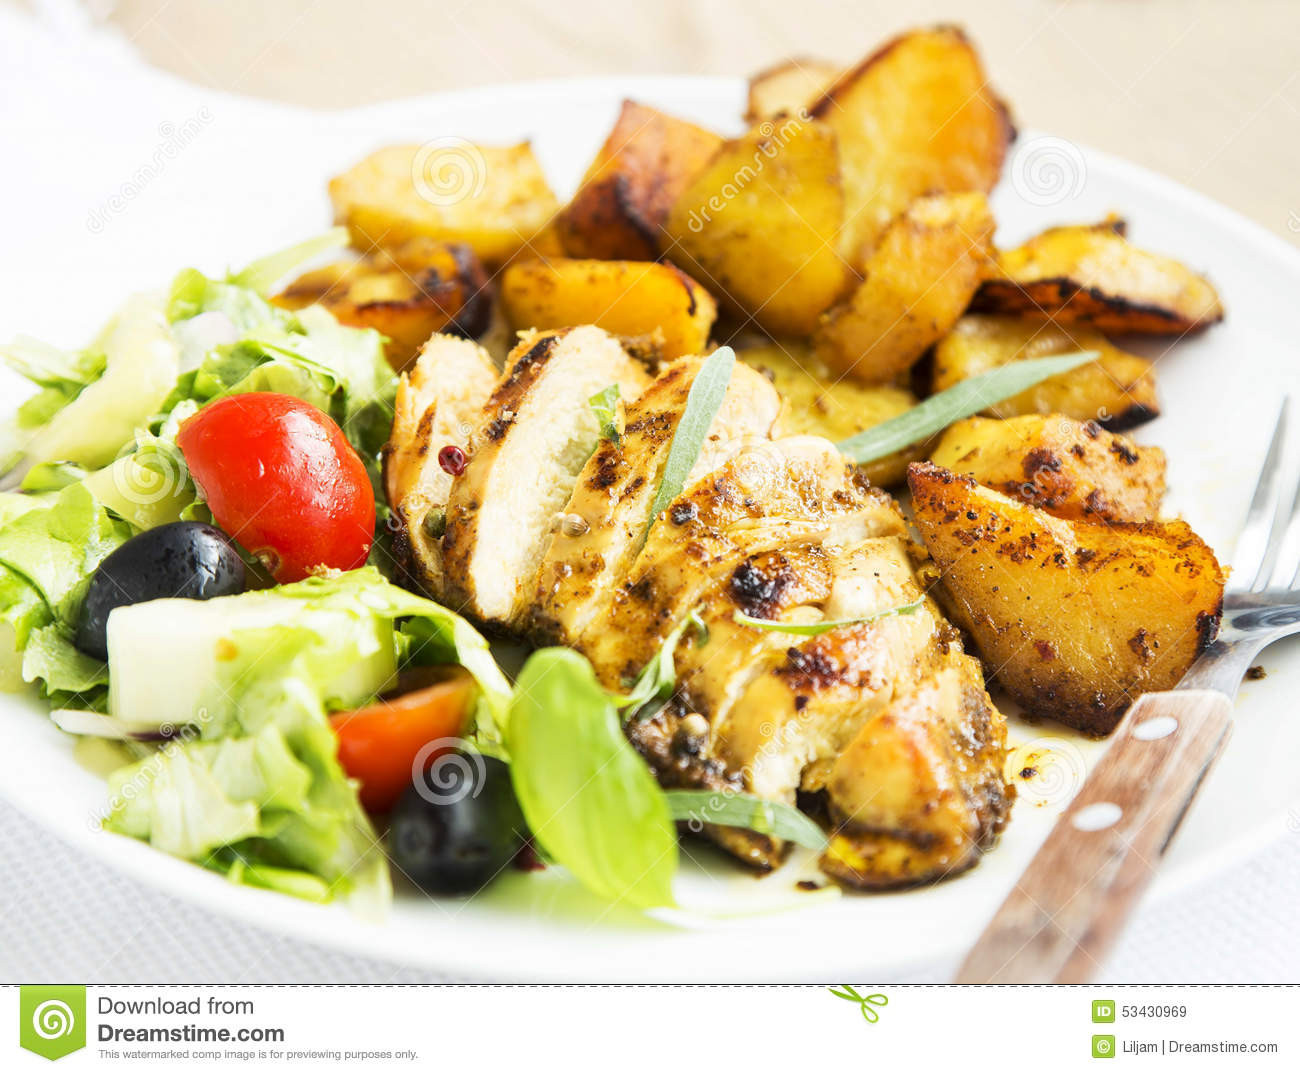 Roasted Chicken Breast And Vegetables  Roasted Chicken Breast With Sweet Potatoes And Salad